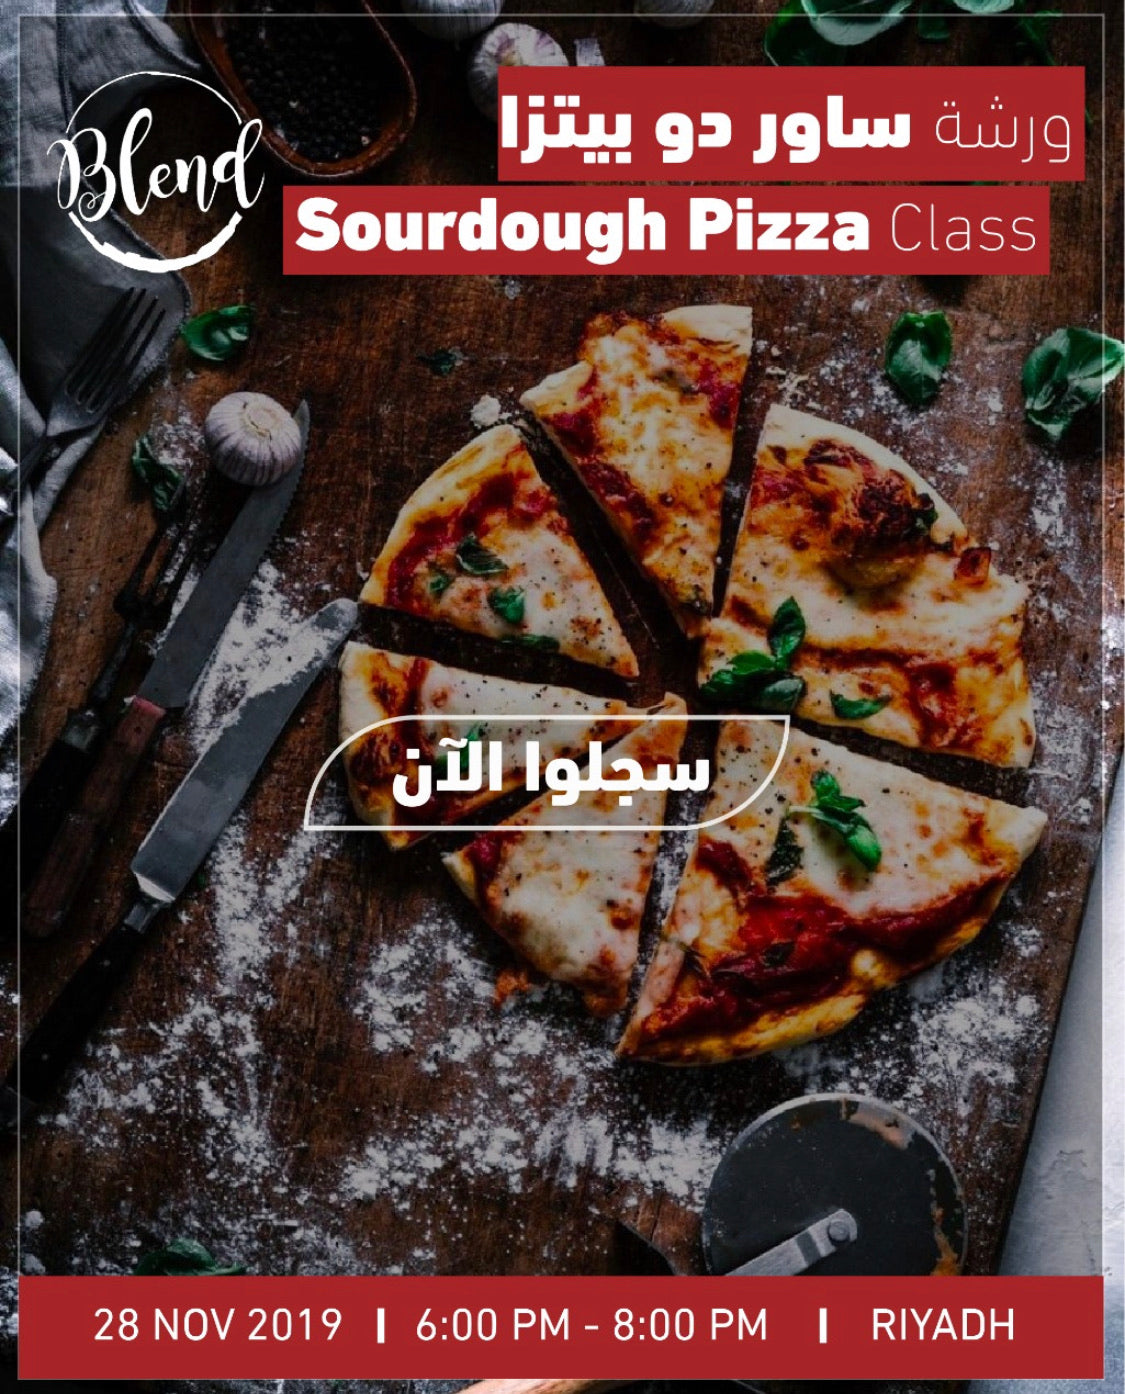 Sourdough Pizza Class (28 Nov 2019)